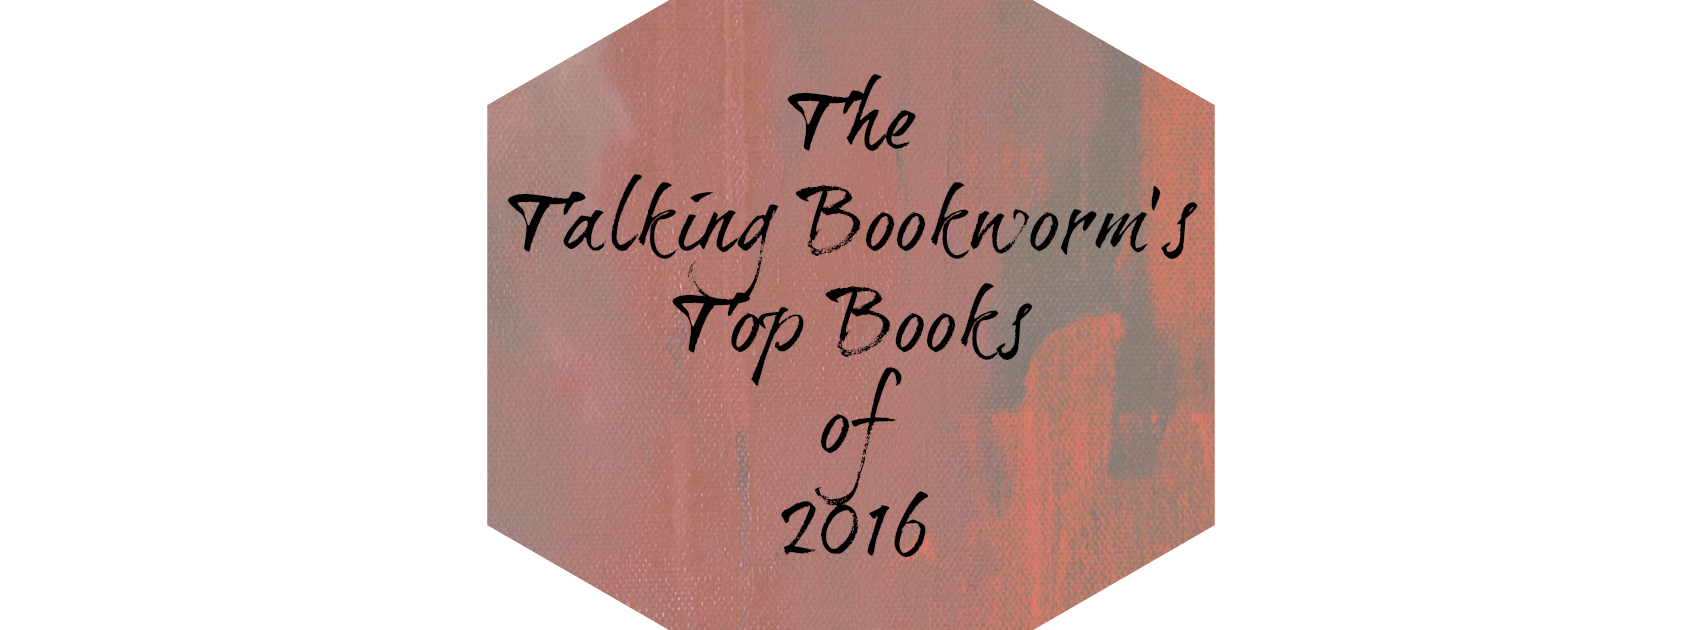 top-books